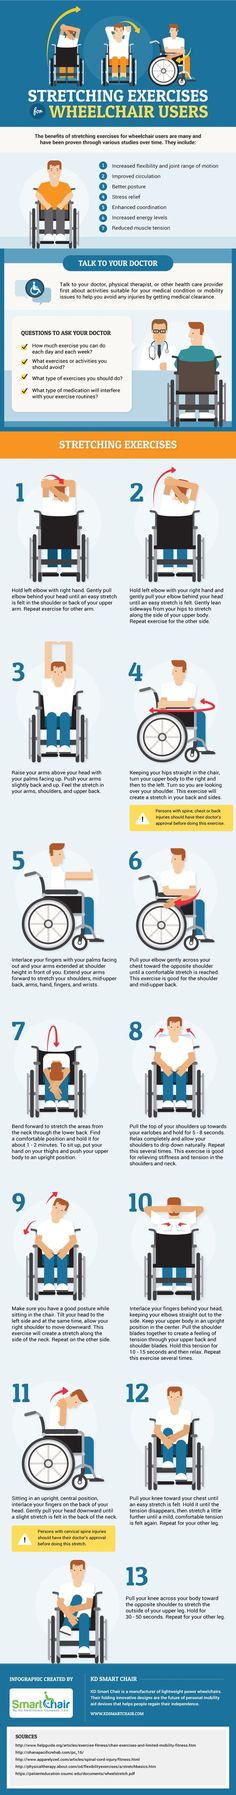 See more here ► https://www.youtube.com/watch?v=fyYVMDPMa68 Tags: fastest healthy way to lose weight, fastest way to weight loss, fastest ways to lose weight - Stretching Exercises for Wheelchair Users Infographic #exercise #diet #workout #fitness #health